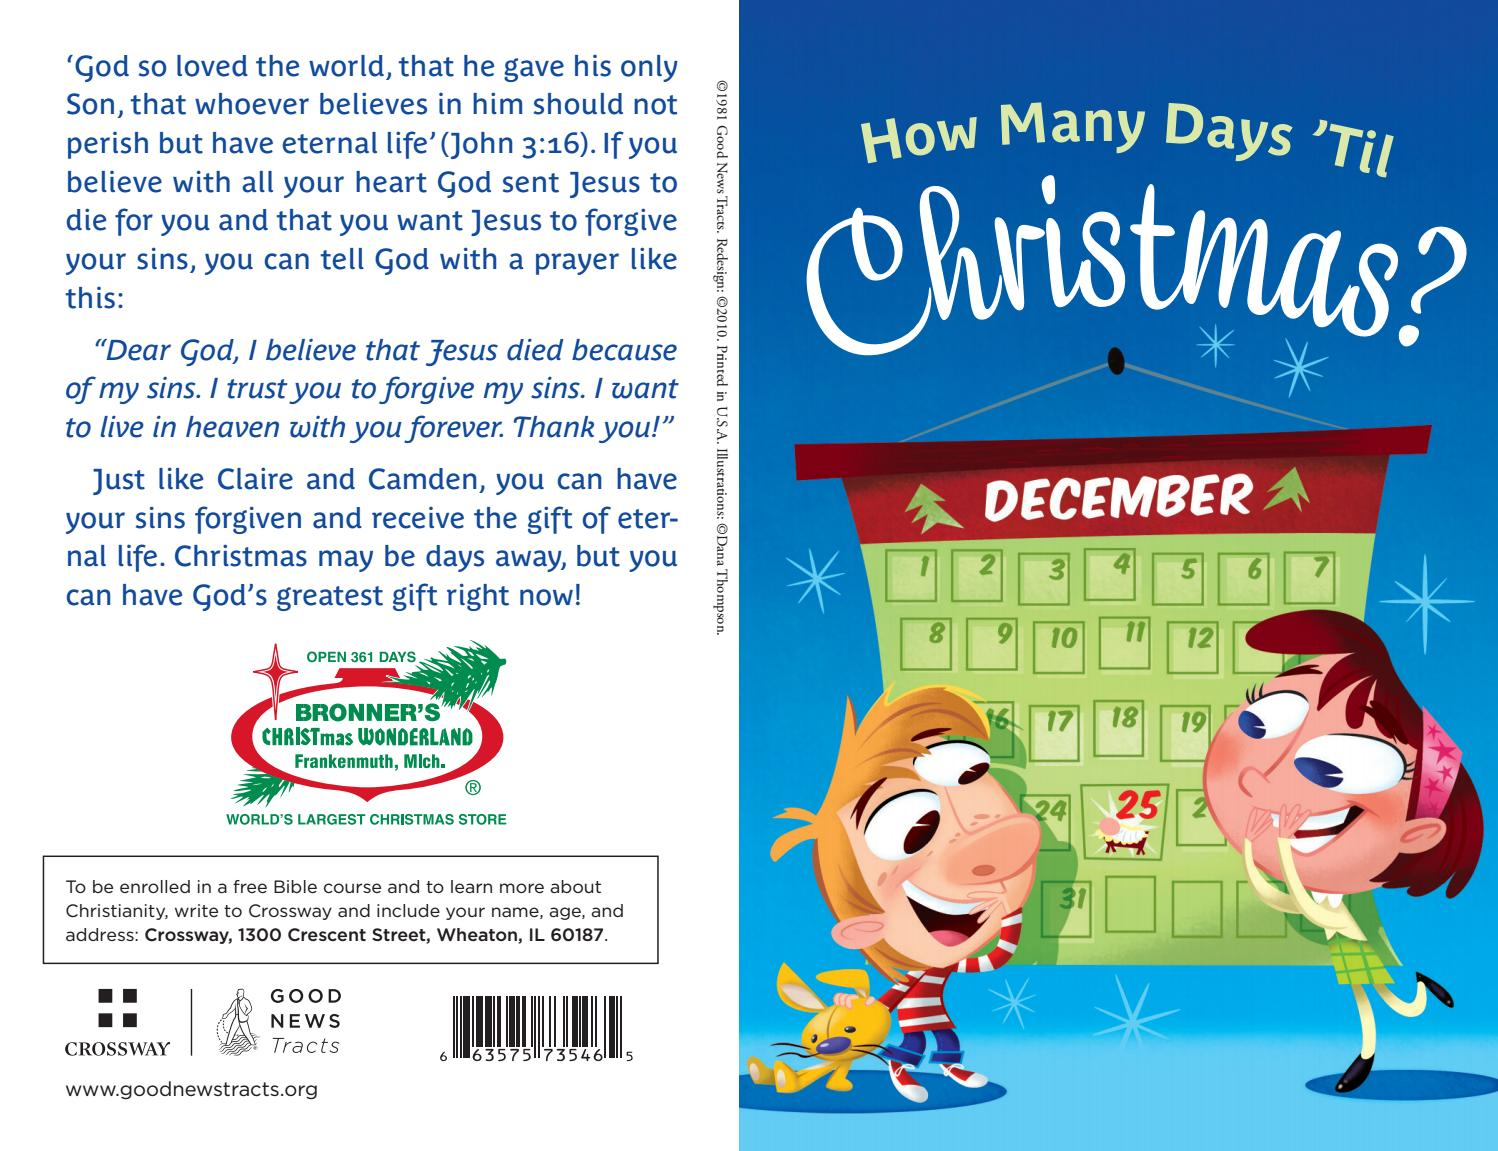 How Many Days Til Christmas.How Many Days Til Christmas By Crossway Issuu